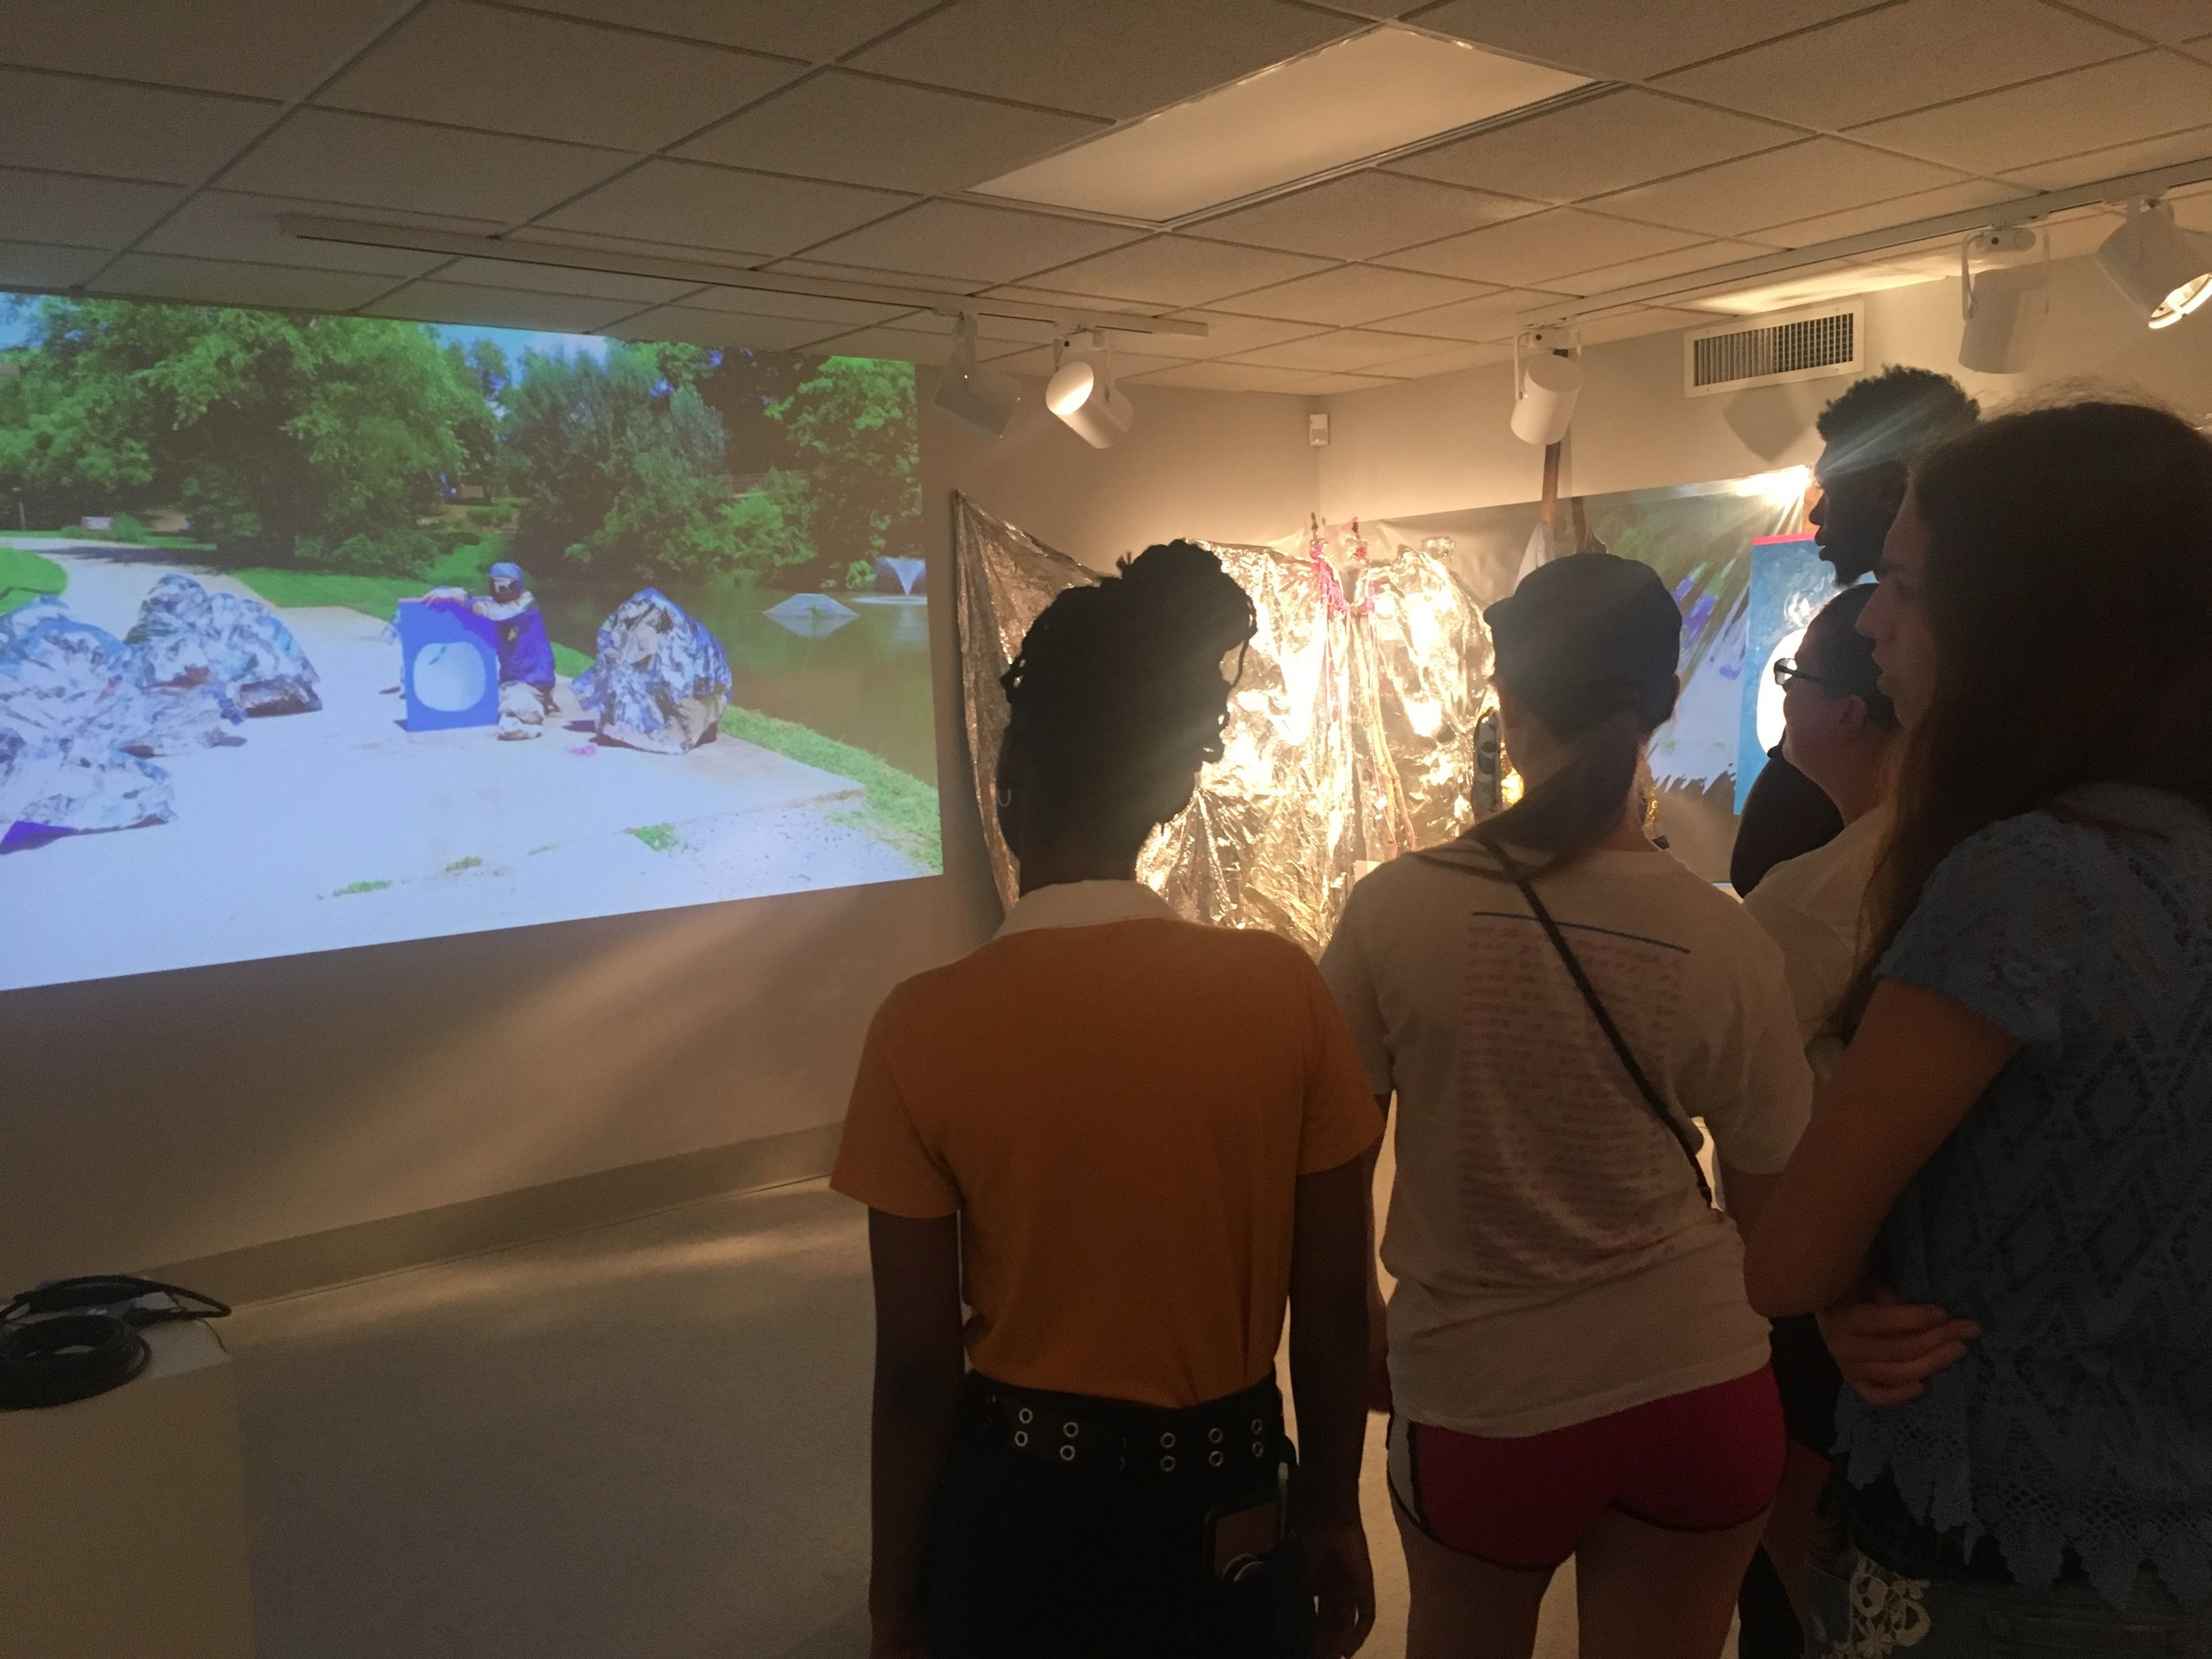 First Year Inquiry 101 class visit to justin carl hurty's the river: perpetual decay on the path to new landscapes.